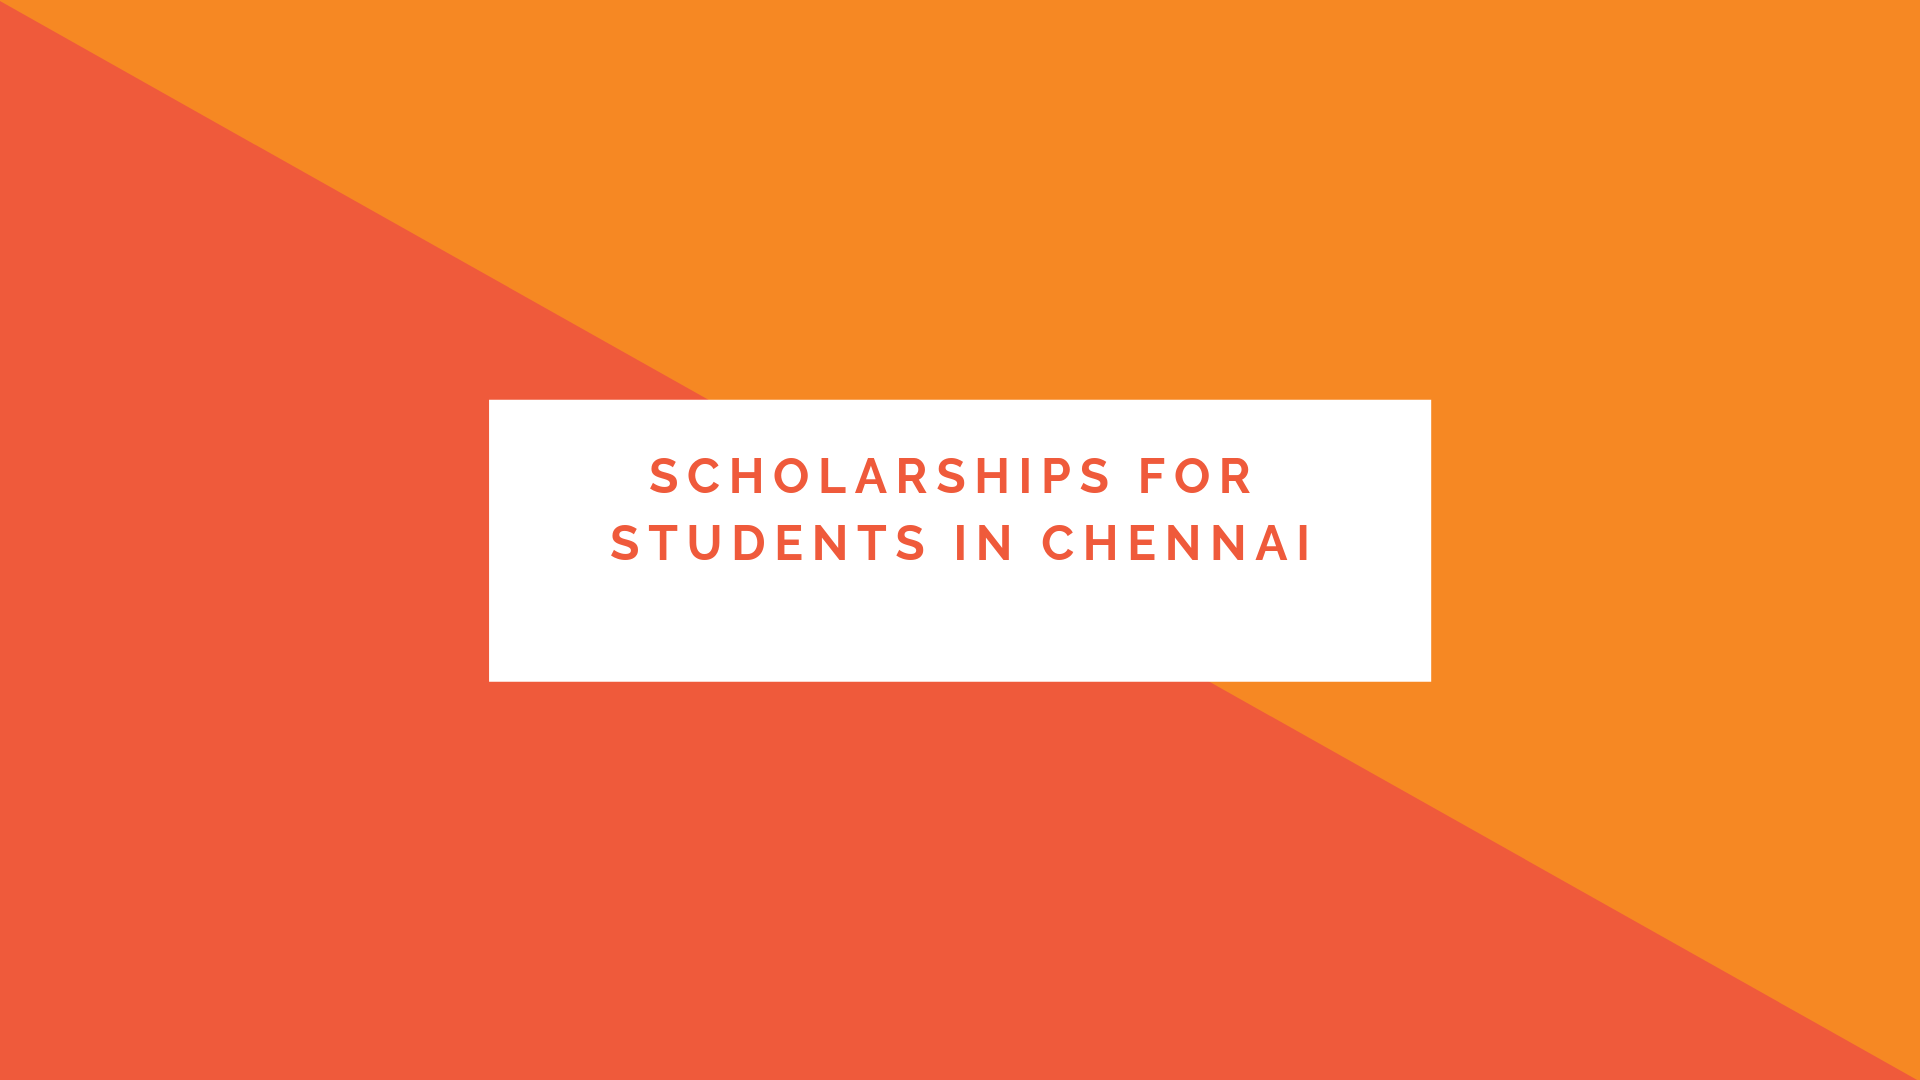 scholarship for students in chennai, scholarships for college students in chennai,scholarship for engineering students in chennai, scholarship for poor students in chennai